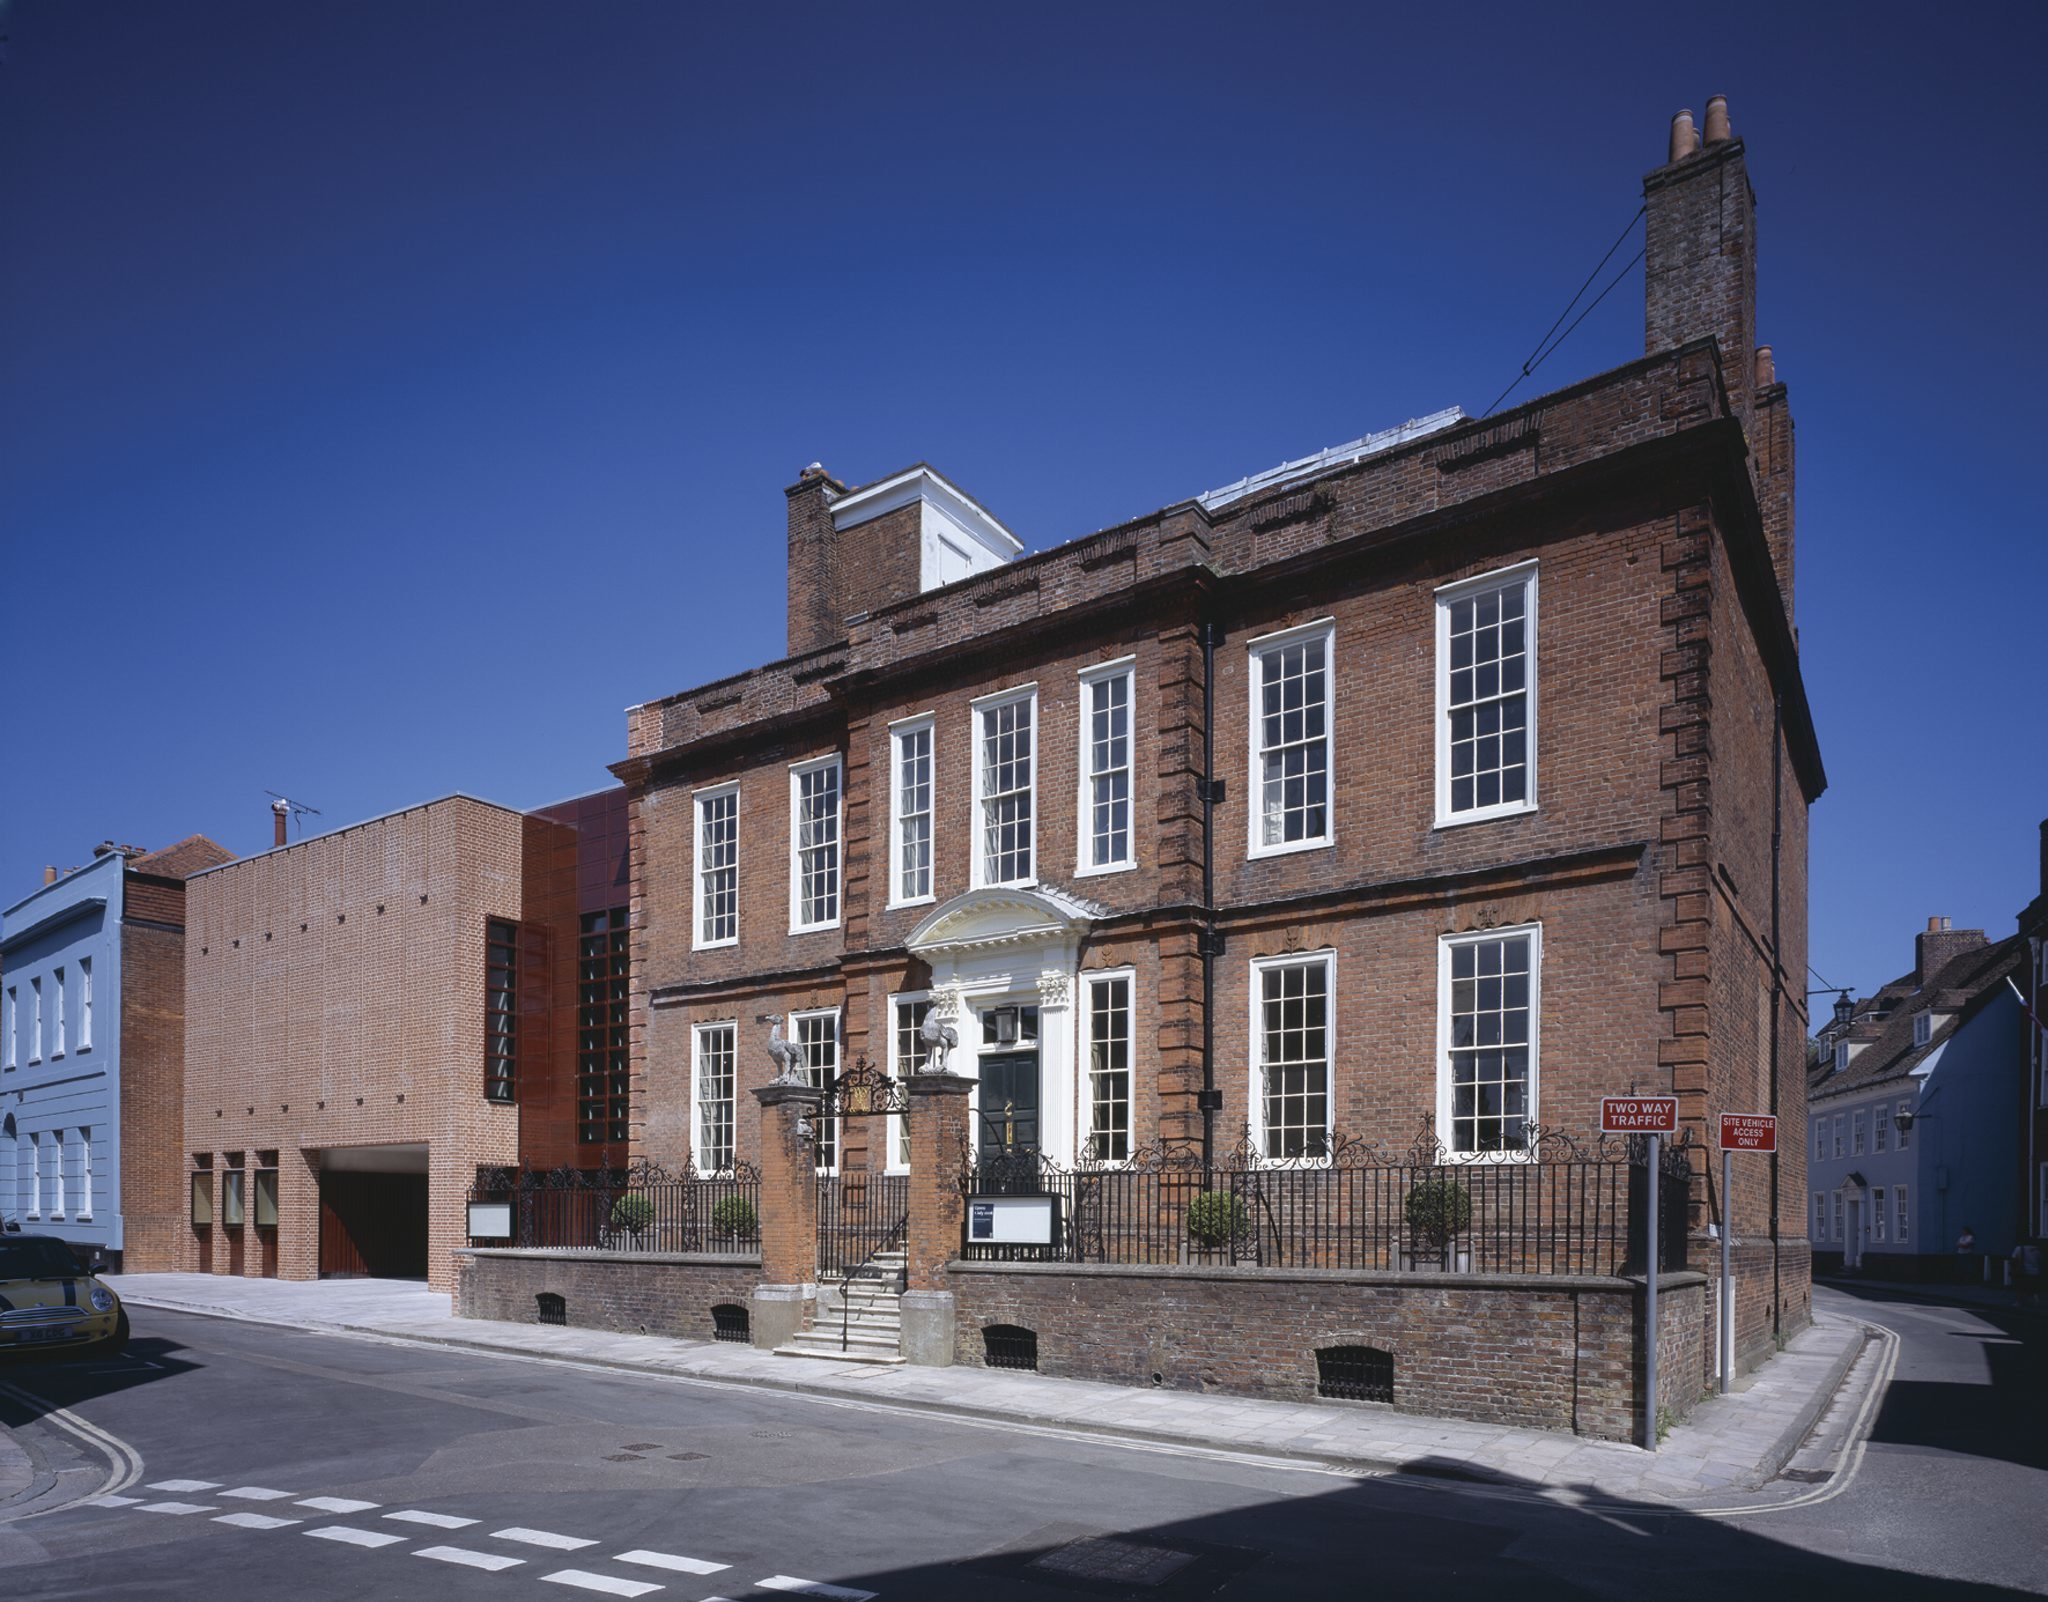 Chichester: Pallant House Gallery